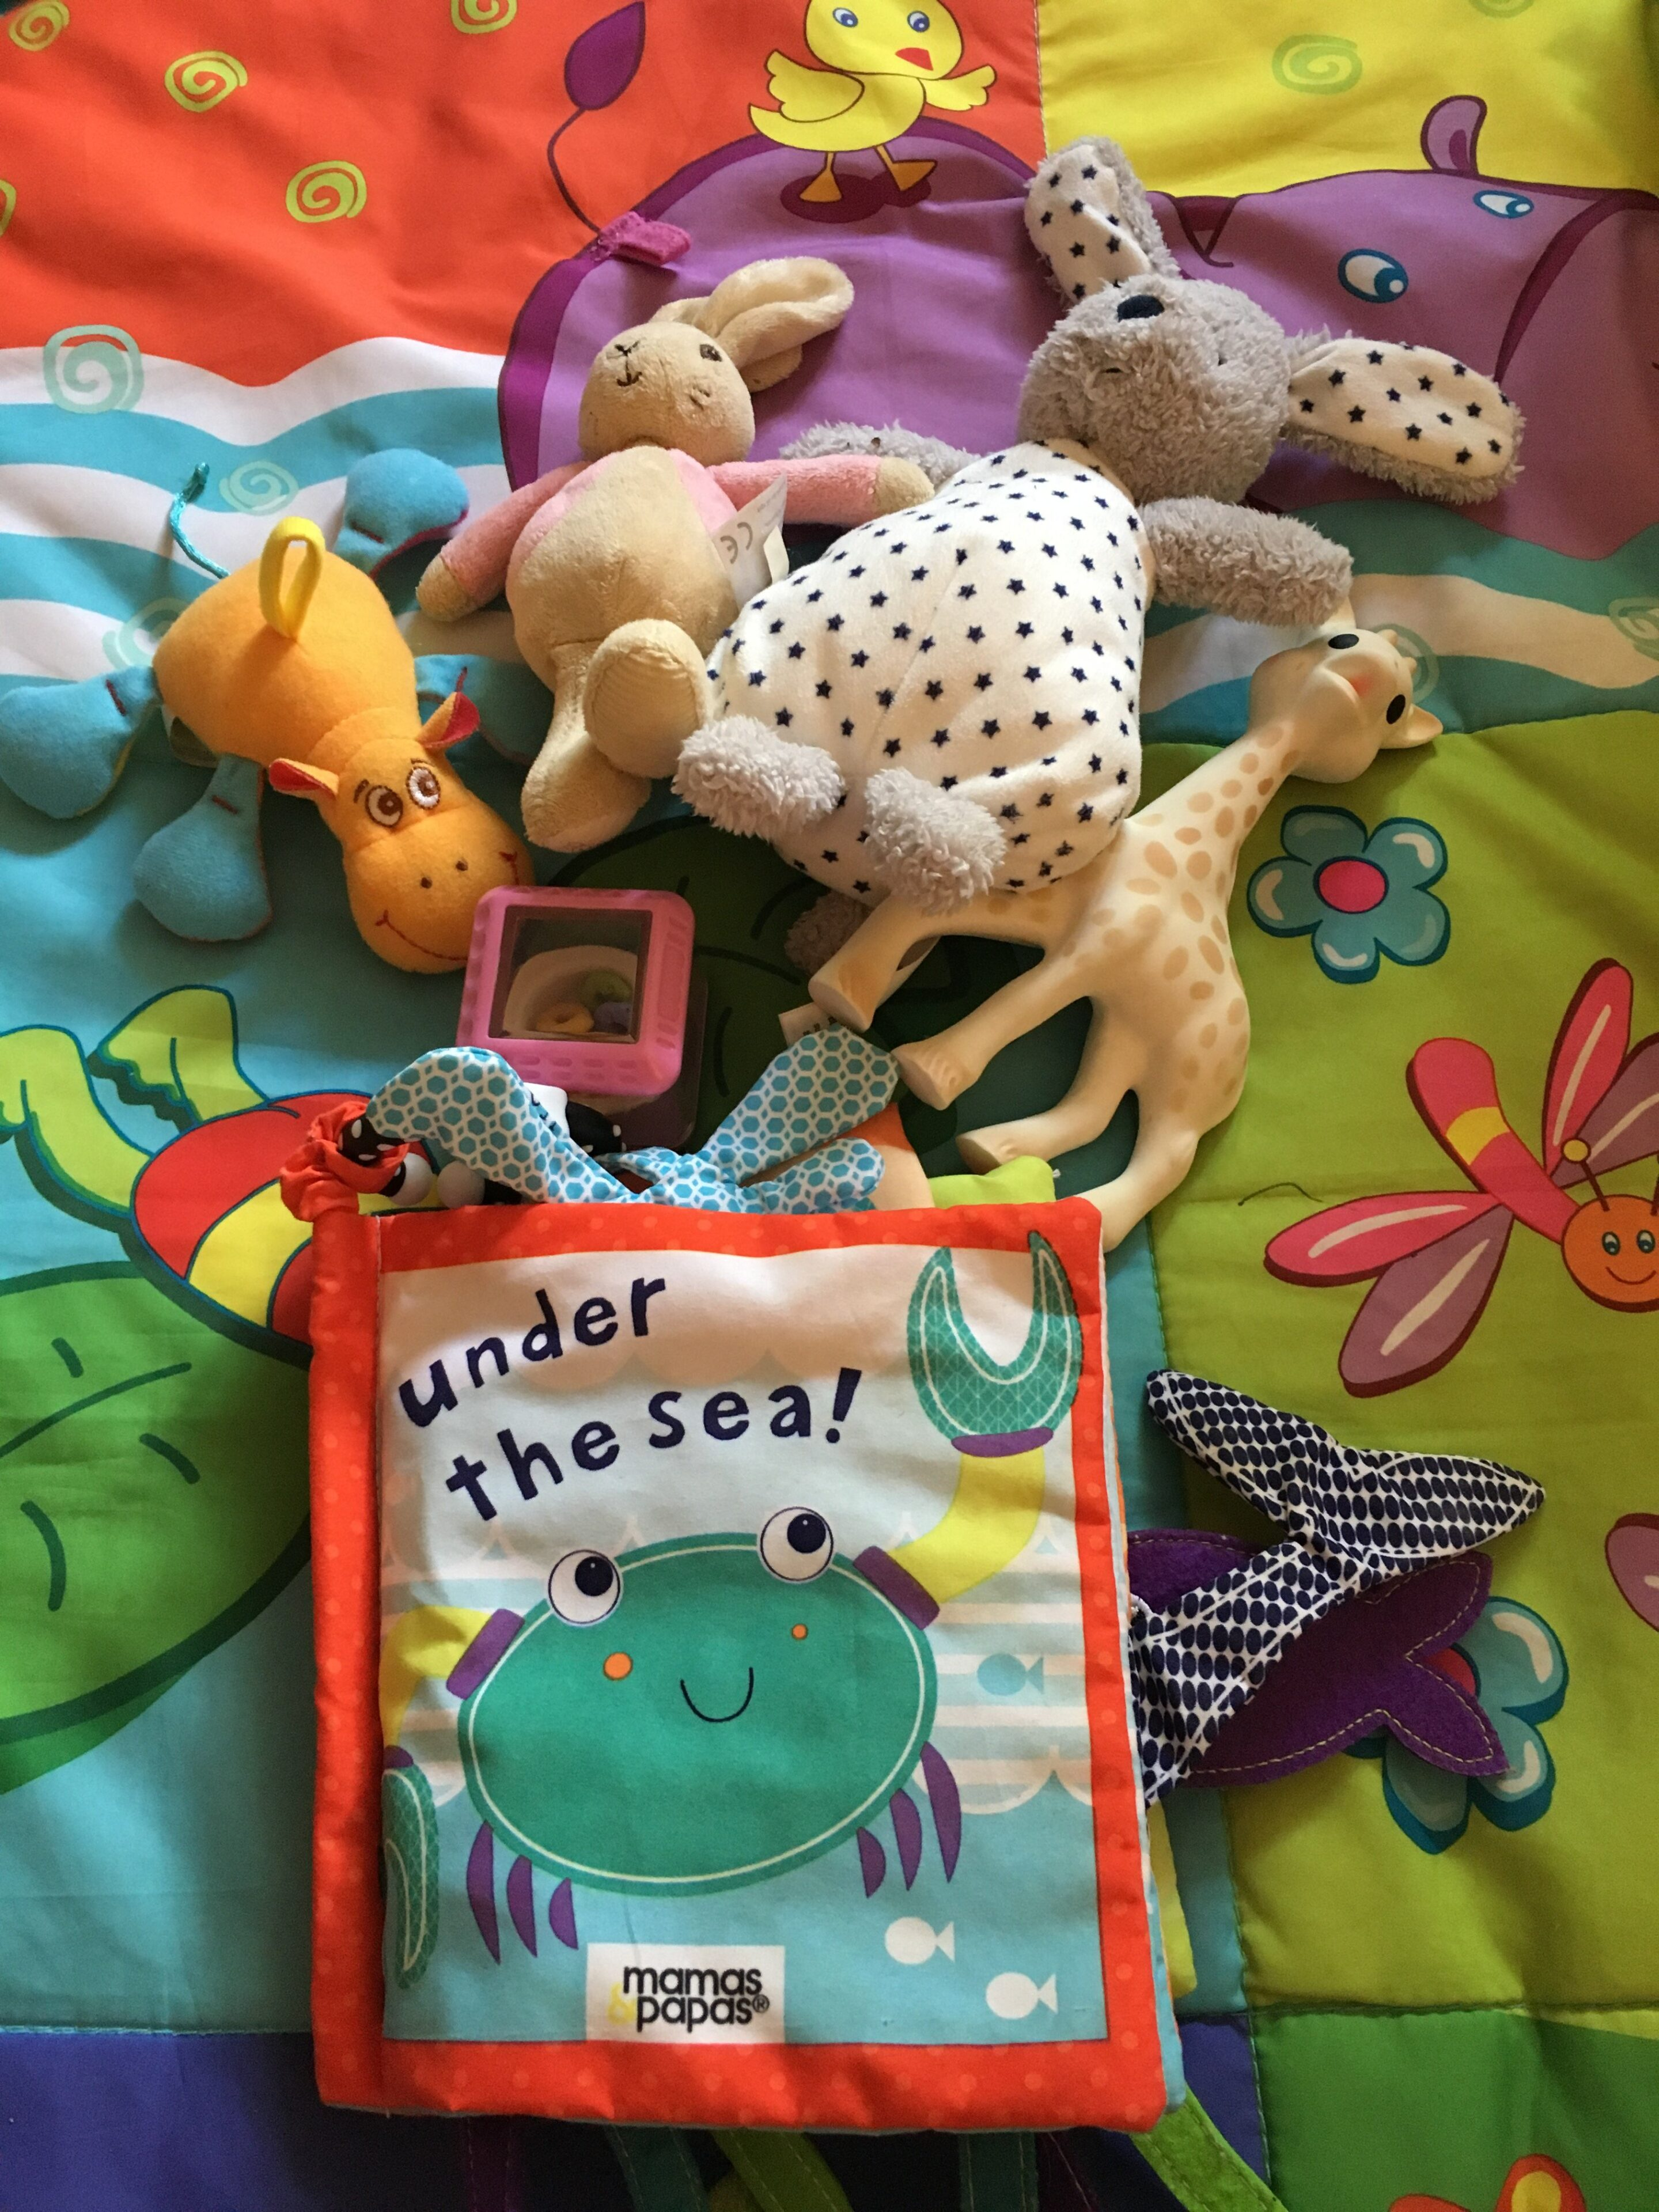 Toys for a baby including Sophie the Giraffe and rattles